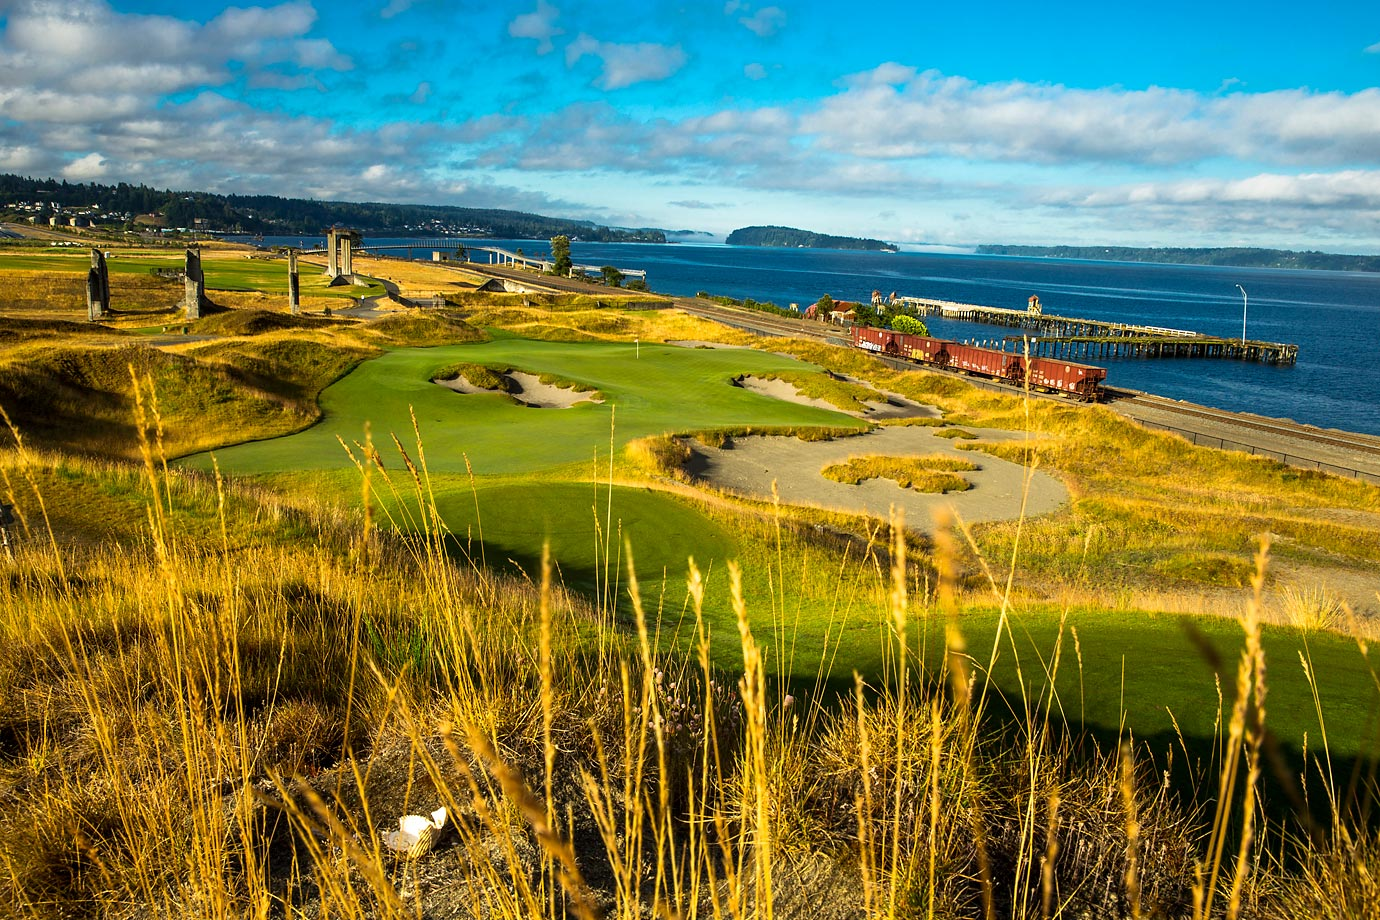 The 17th hole at Chambers Bay is a breathtaking par 3 along the water with an active rail line running alongside it, which fits its nickname,'Derailed'.